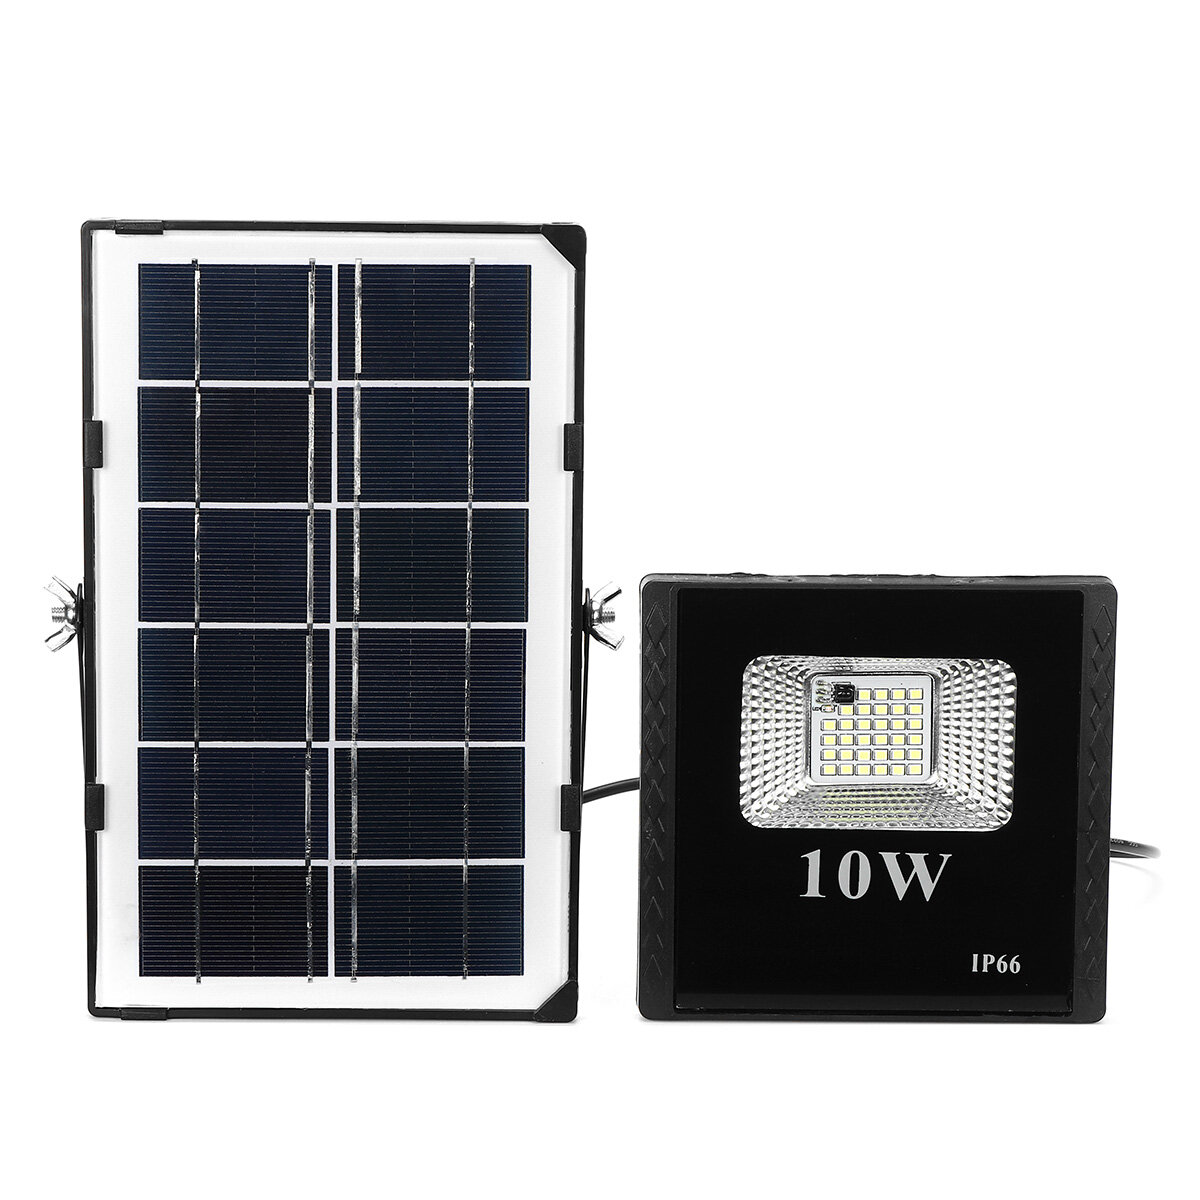 64 LED Solar Floodlight Security Outdoor Garden Modern Flood Light Wall Lamp